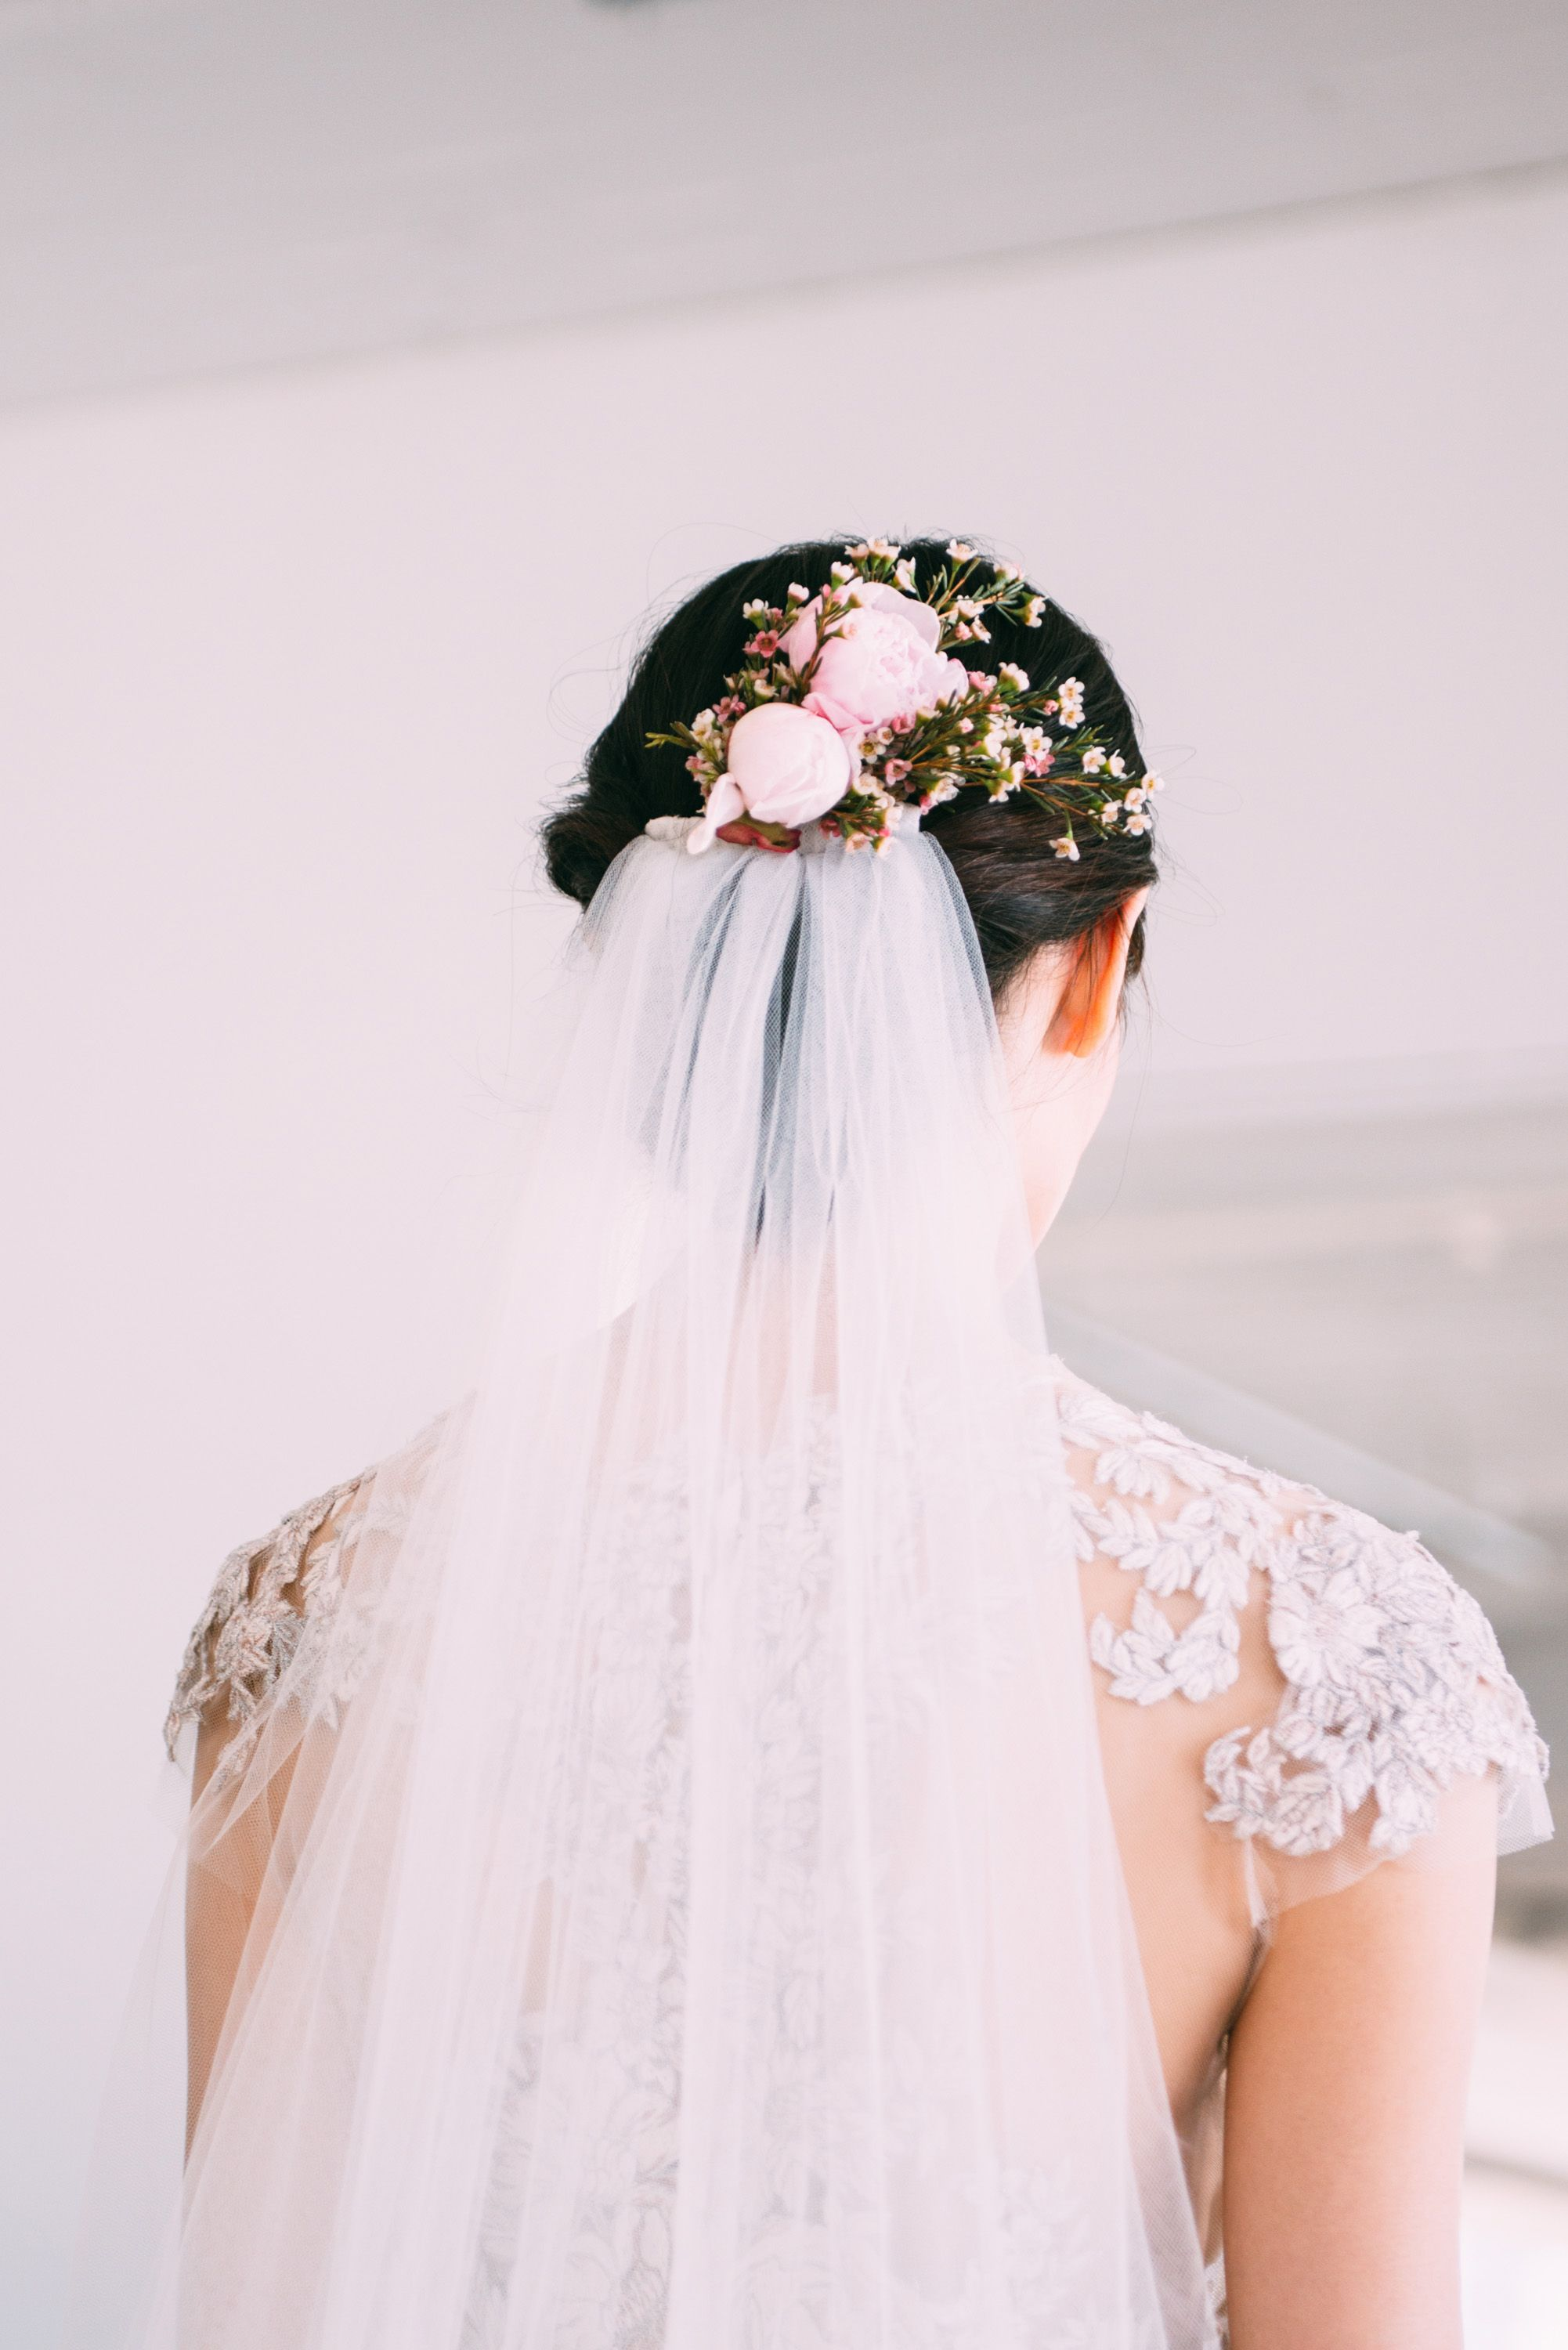 Wedding Hair and Makeup Inspiration From Spring 2017 Bridal Fashion Week